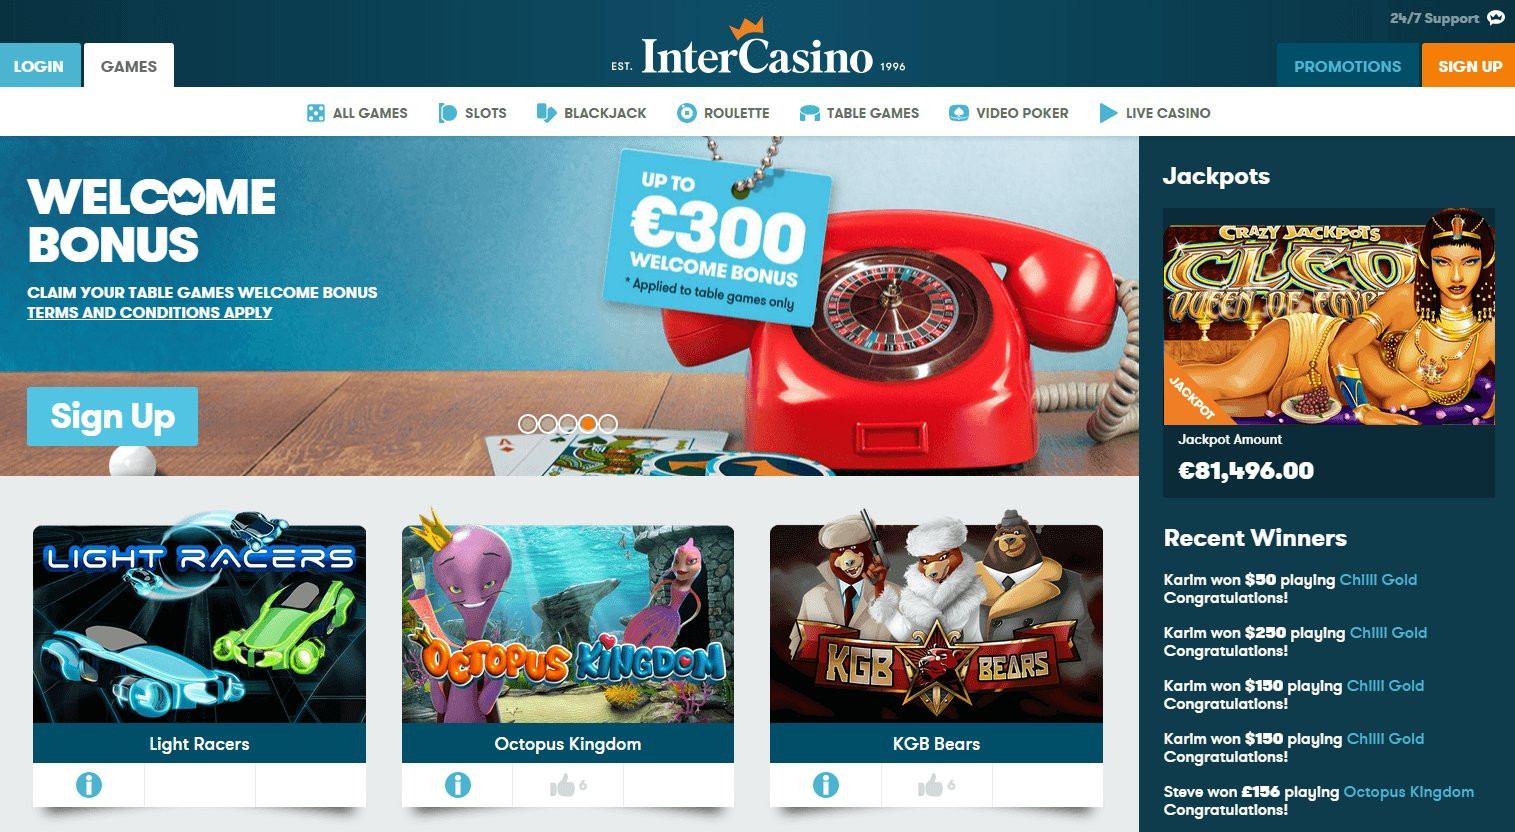 inter-casino-screenshot